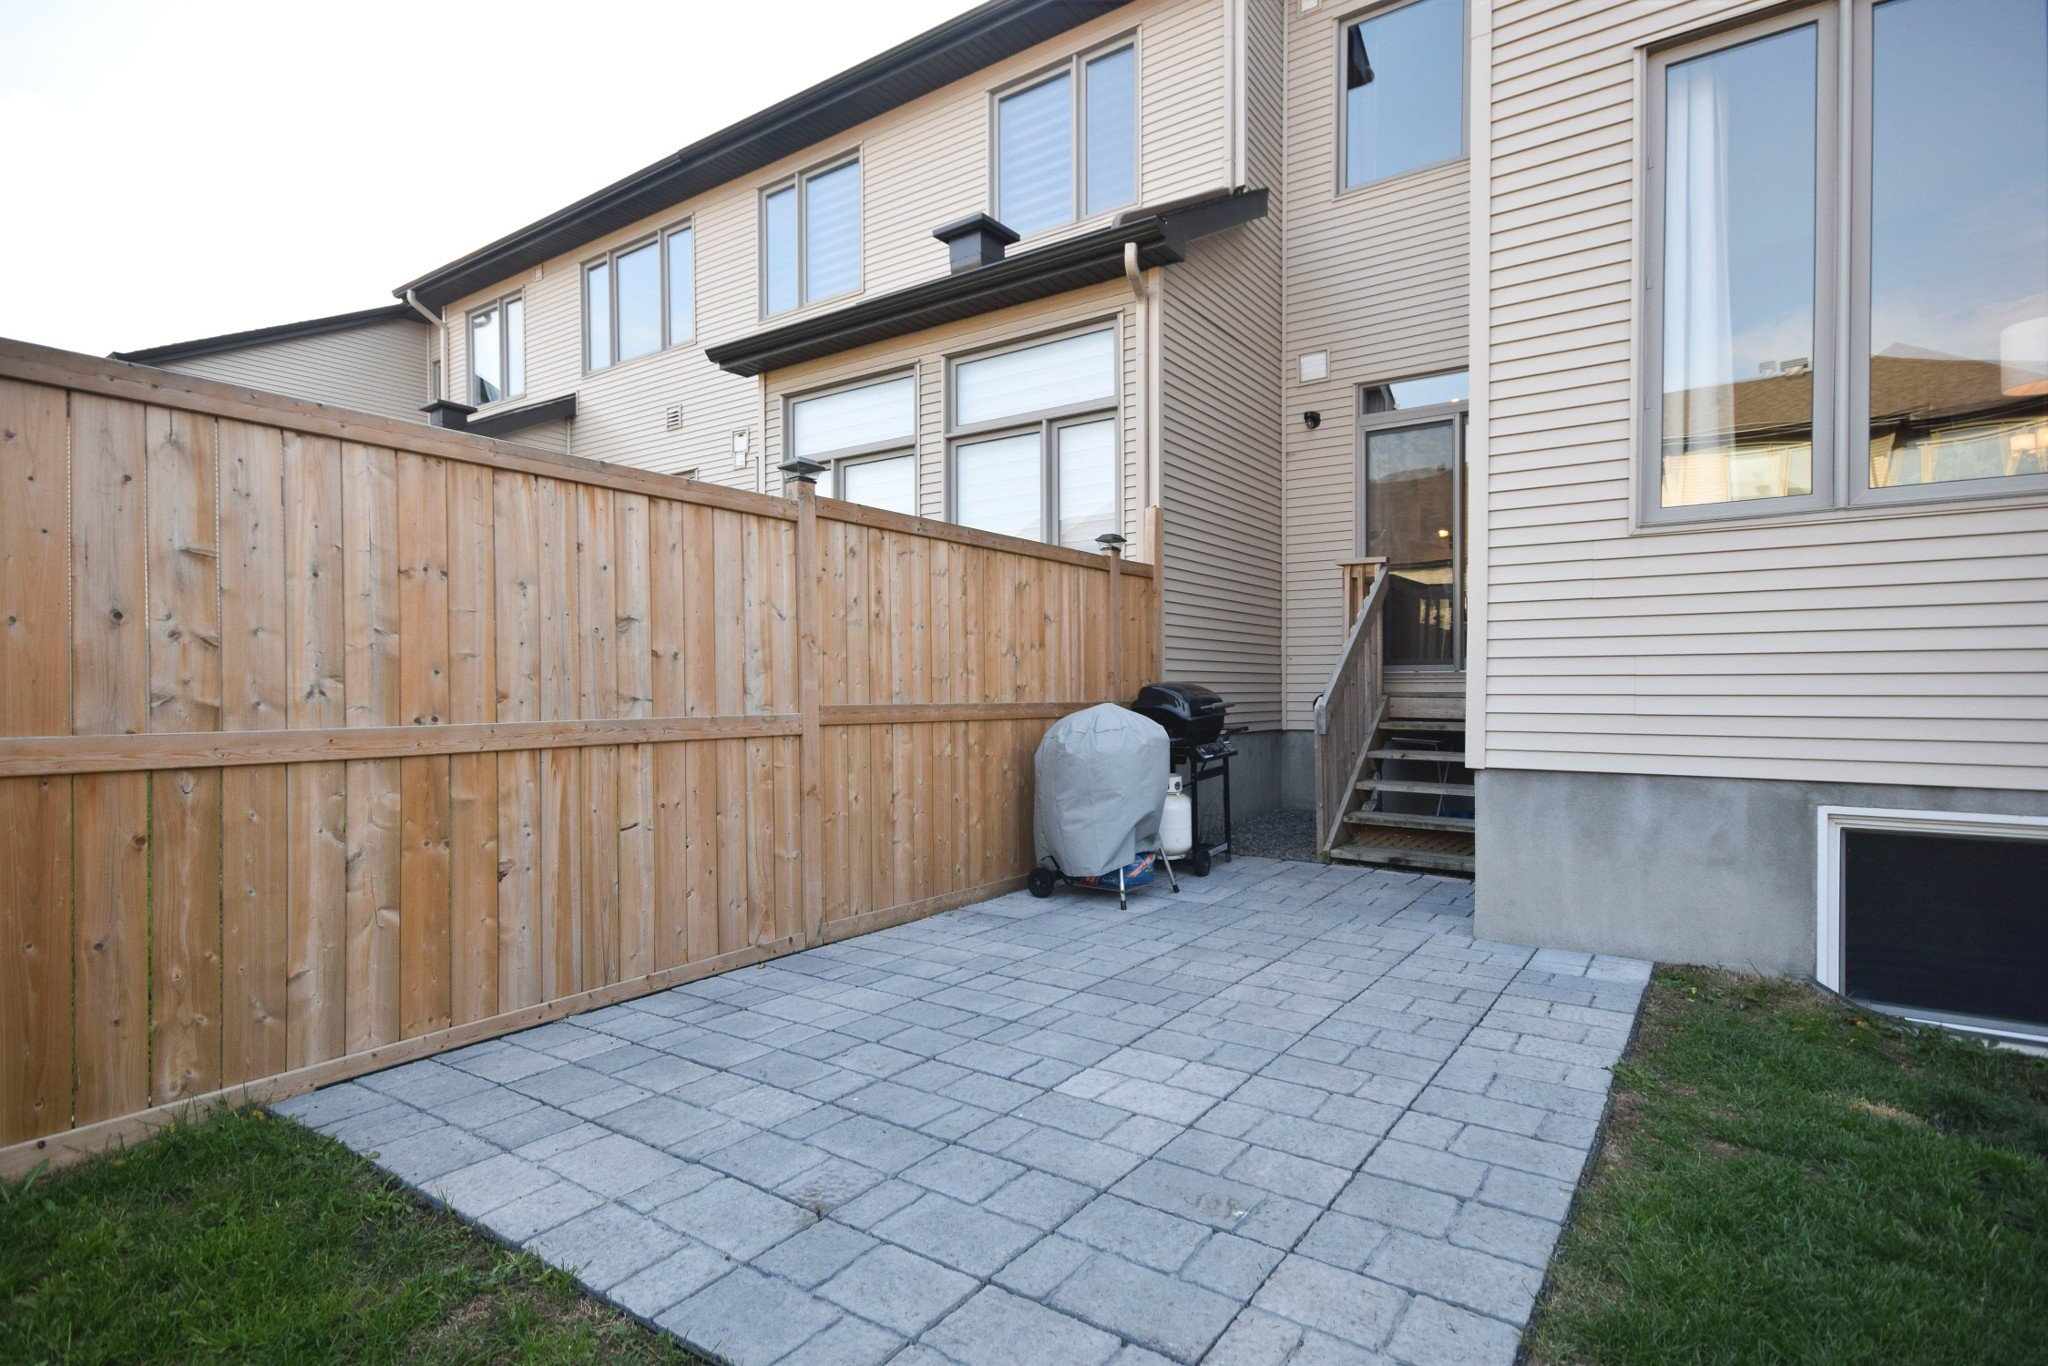 Photo 66: Photos: 131 Popplewell Crescent in Ottawa: Cedargrove / Fraserdale House for sale (Barrhaven)  : MLS®# 1130335